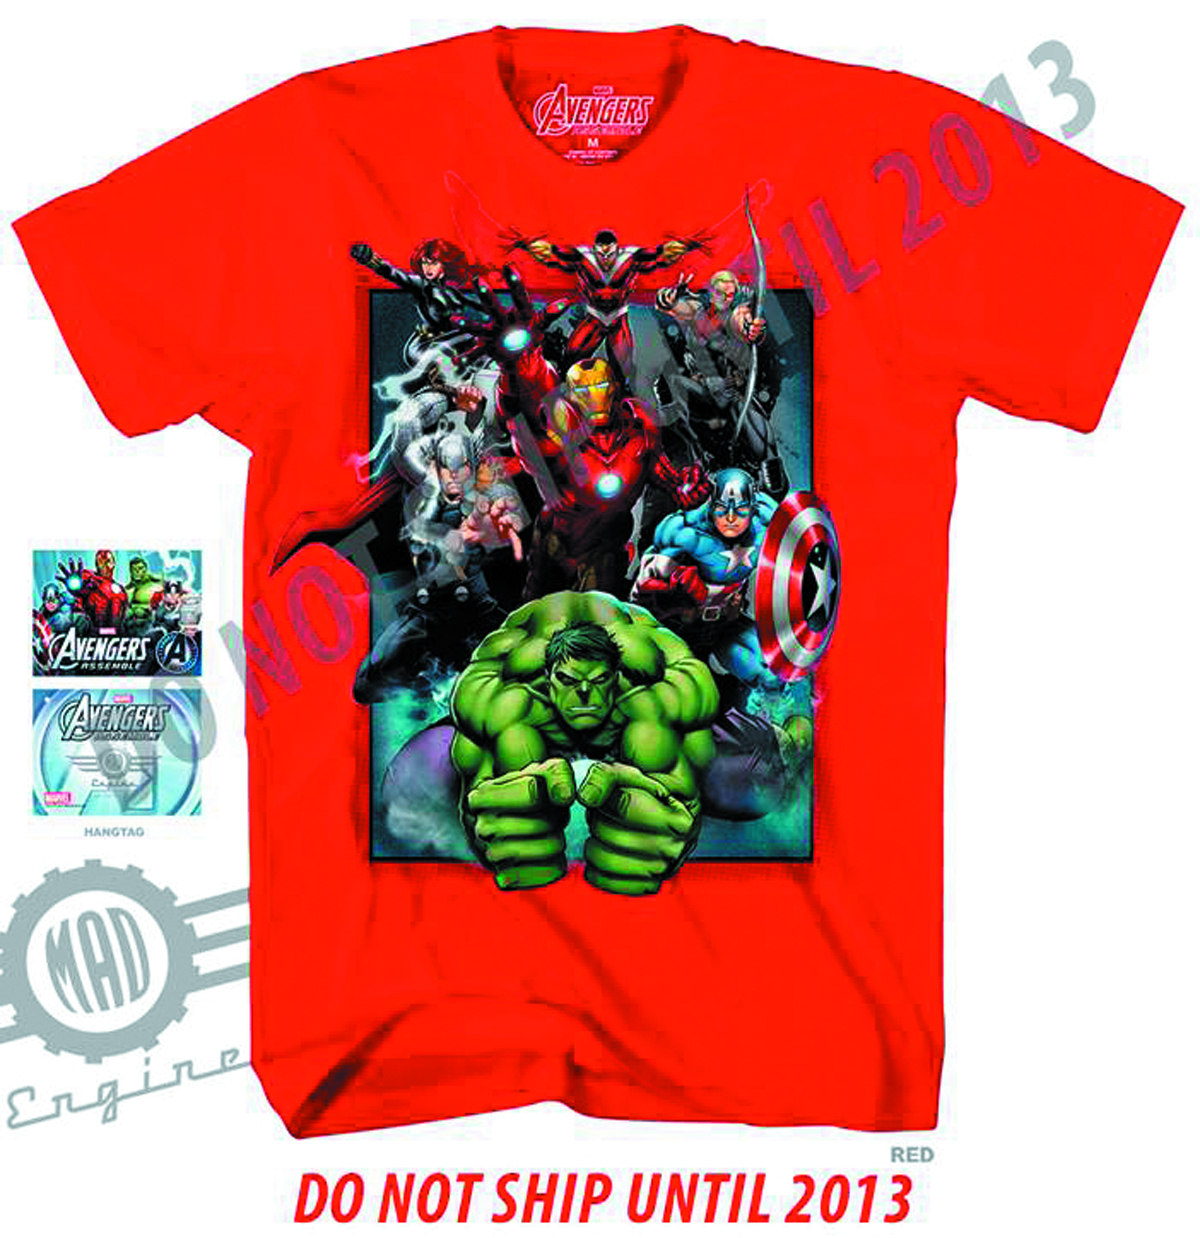 AVENGERS ASSEMBLE BOXED IN RED T/S XXL